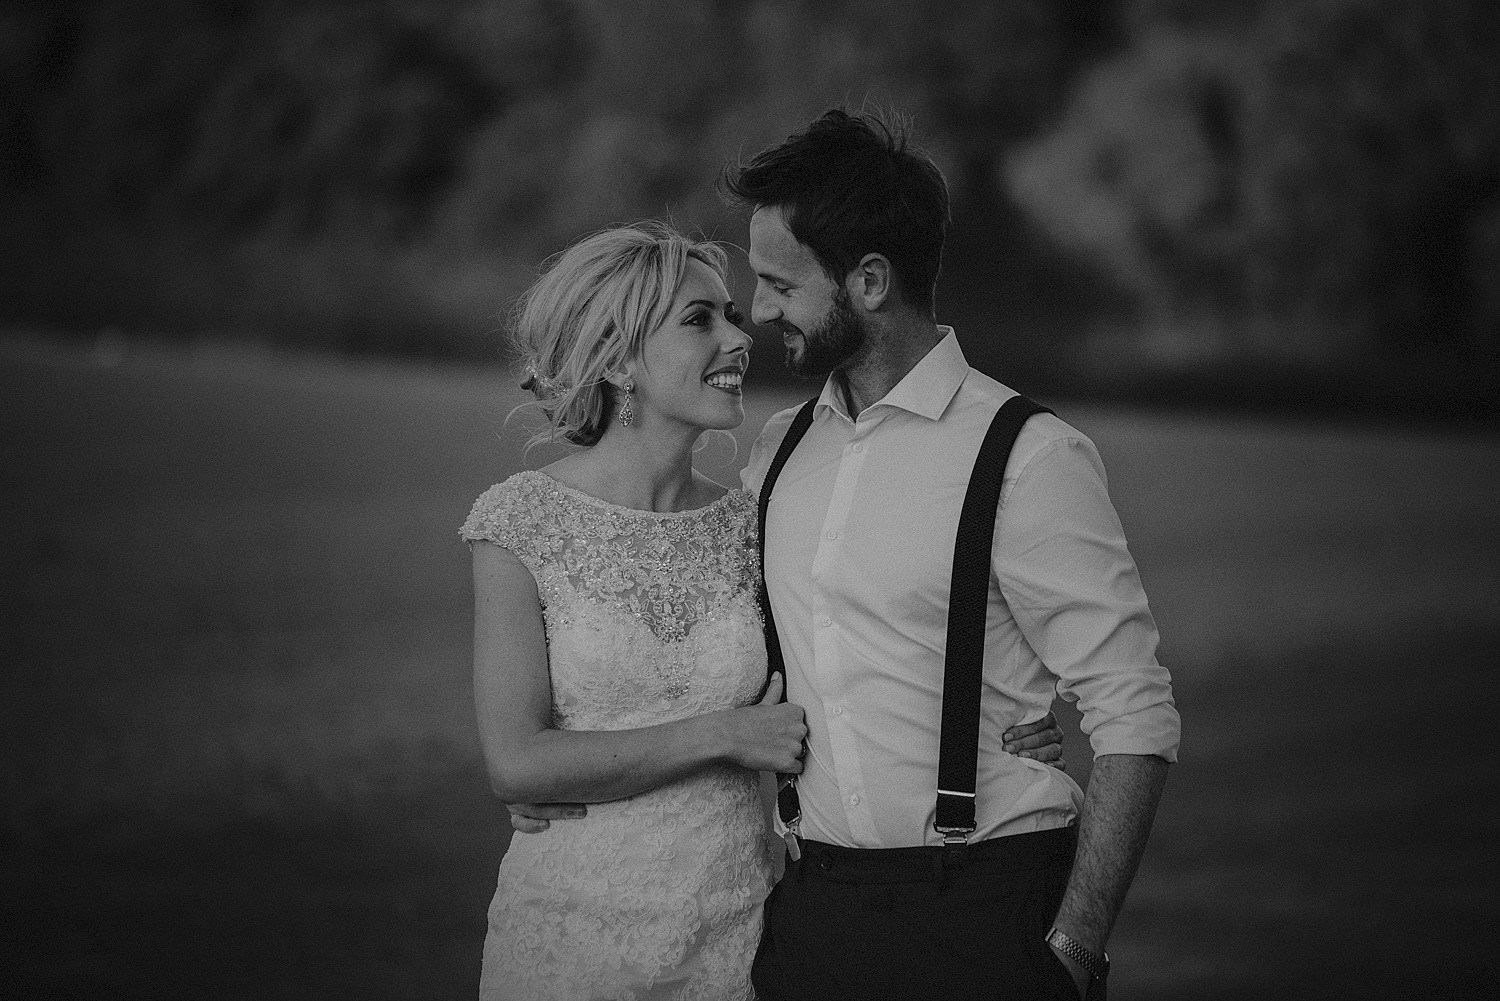 best-of-wedding-photography-2015-129.JPG